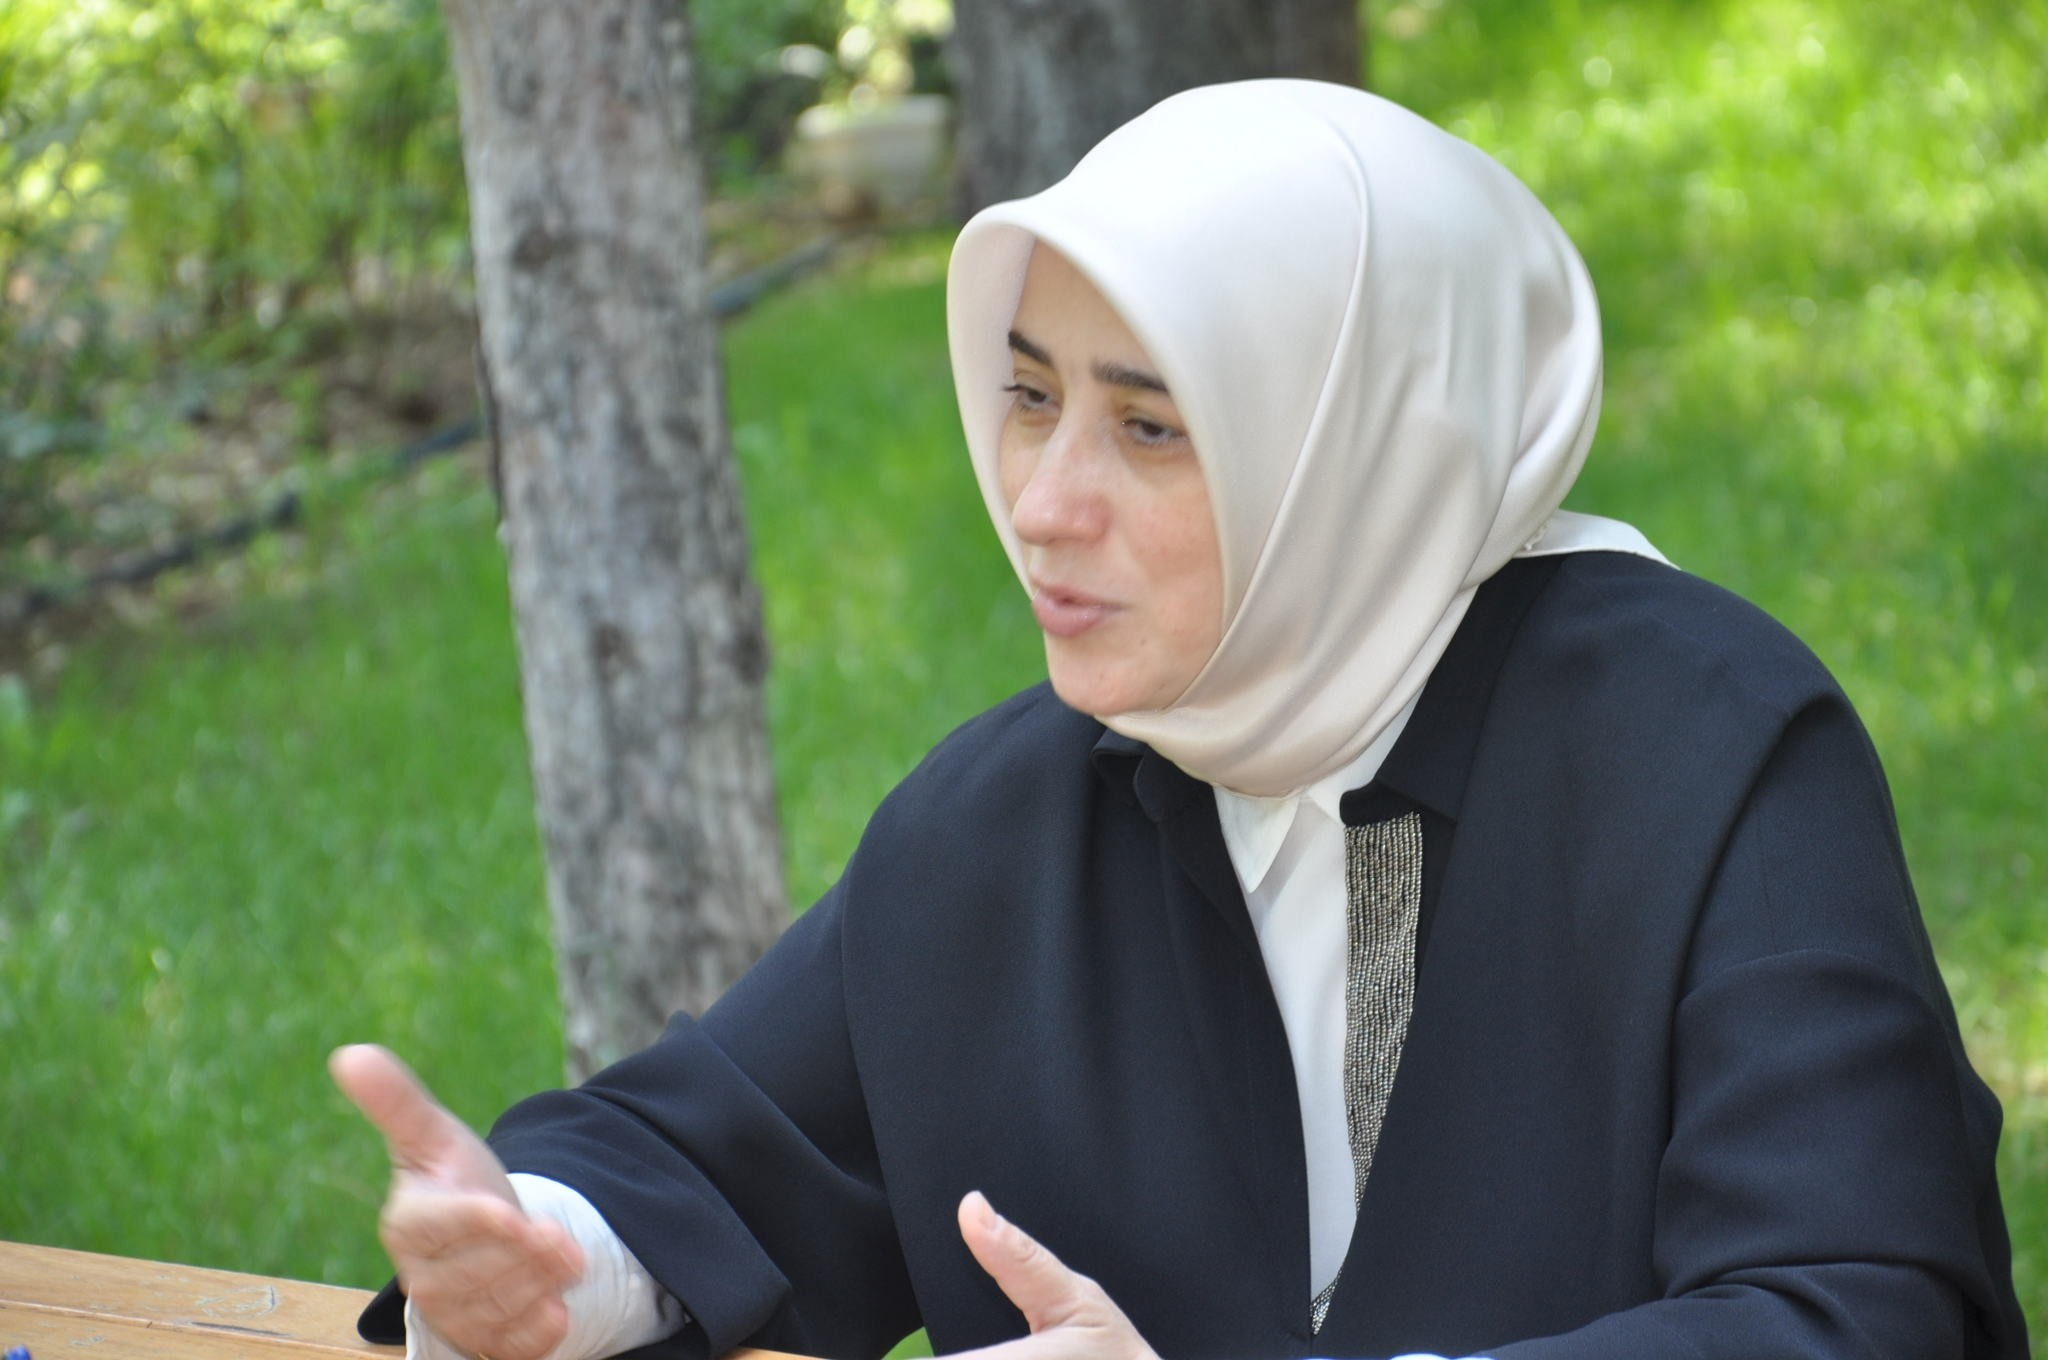 Zengin affirmed that AK Party Womenu2019s Branch has 4.6 million members, more than any other political party in Turkey.